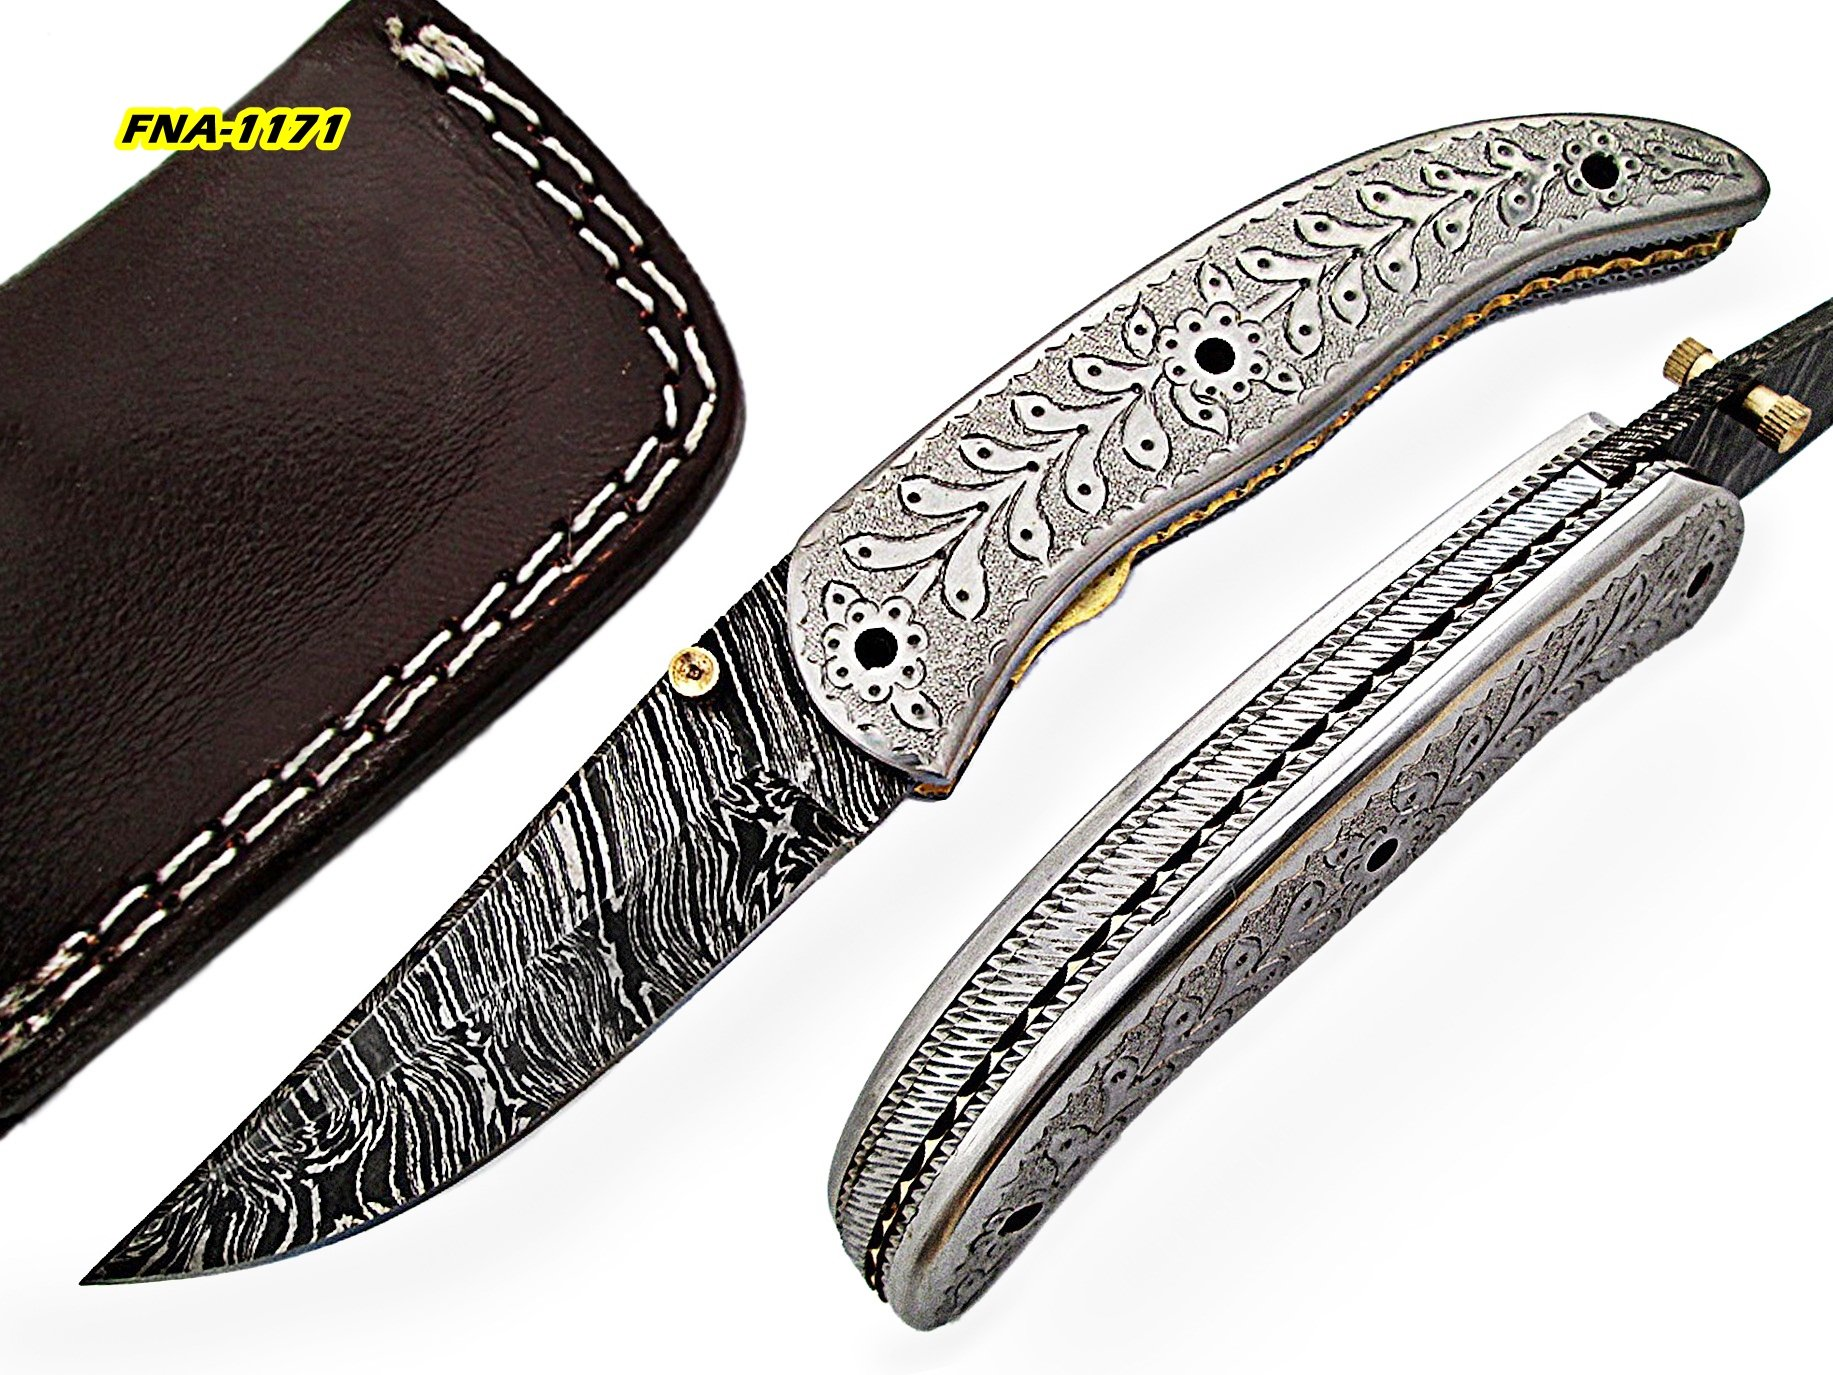 FNA-1171, Custom Handmade Damascus Steel 7.3 Inches Folding Knife - Gorgeous Engraving Work on Stainless Steel Handle